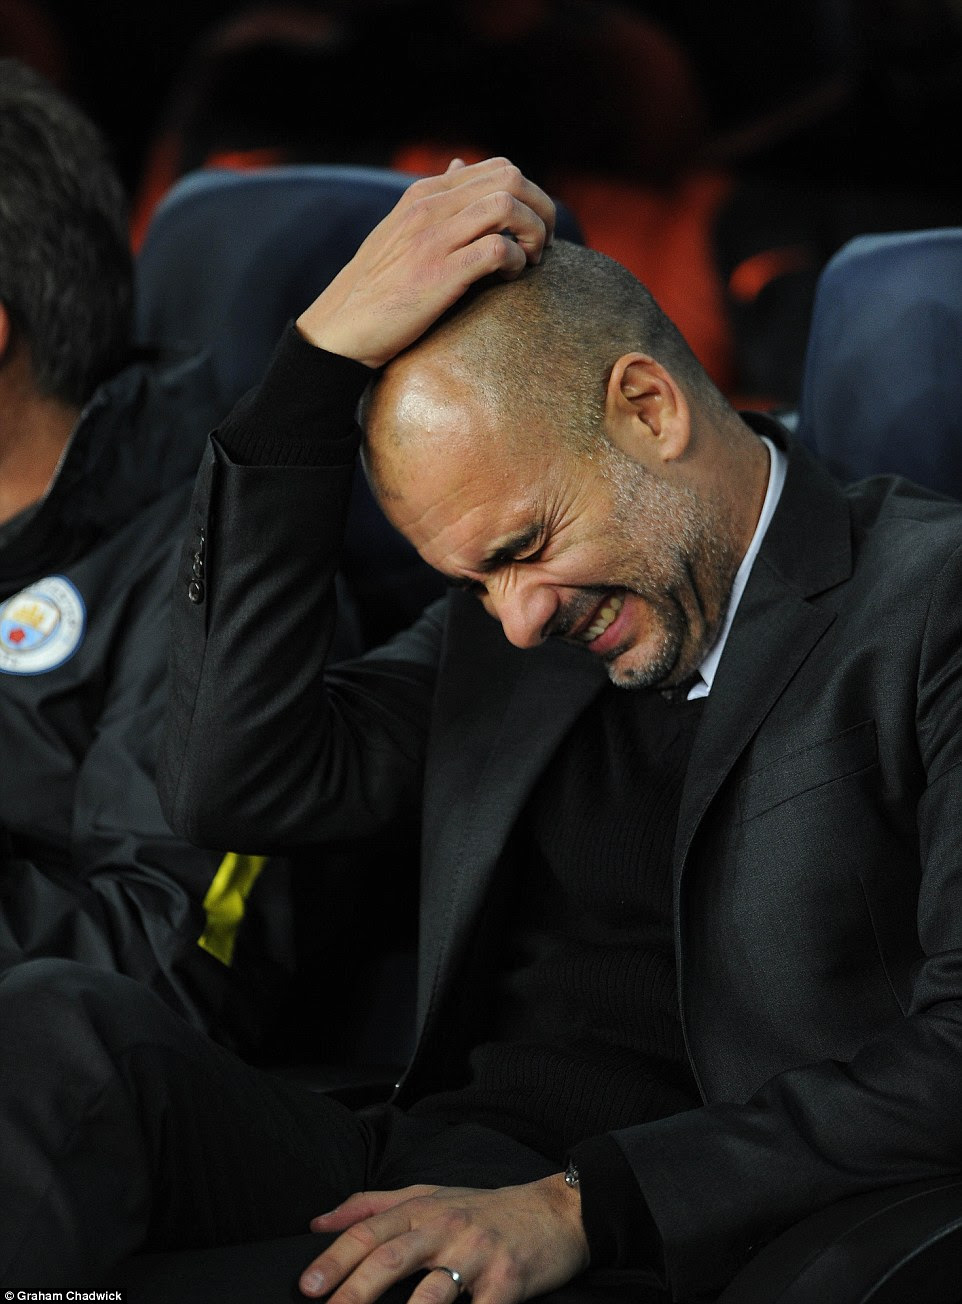 In contrast, City boss Pep Guardiola shows his frustration at seeing his side concede on 17 minutes